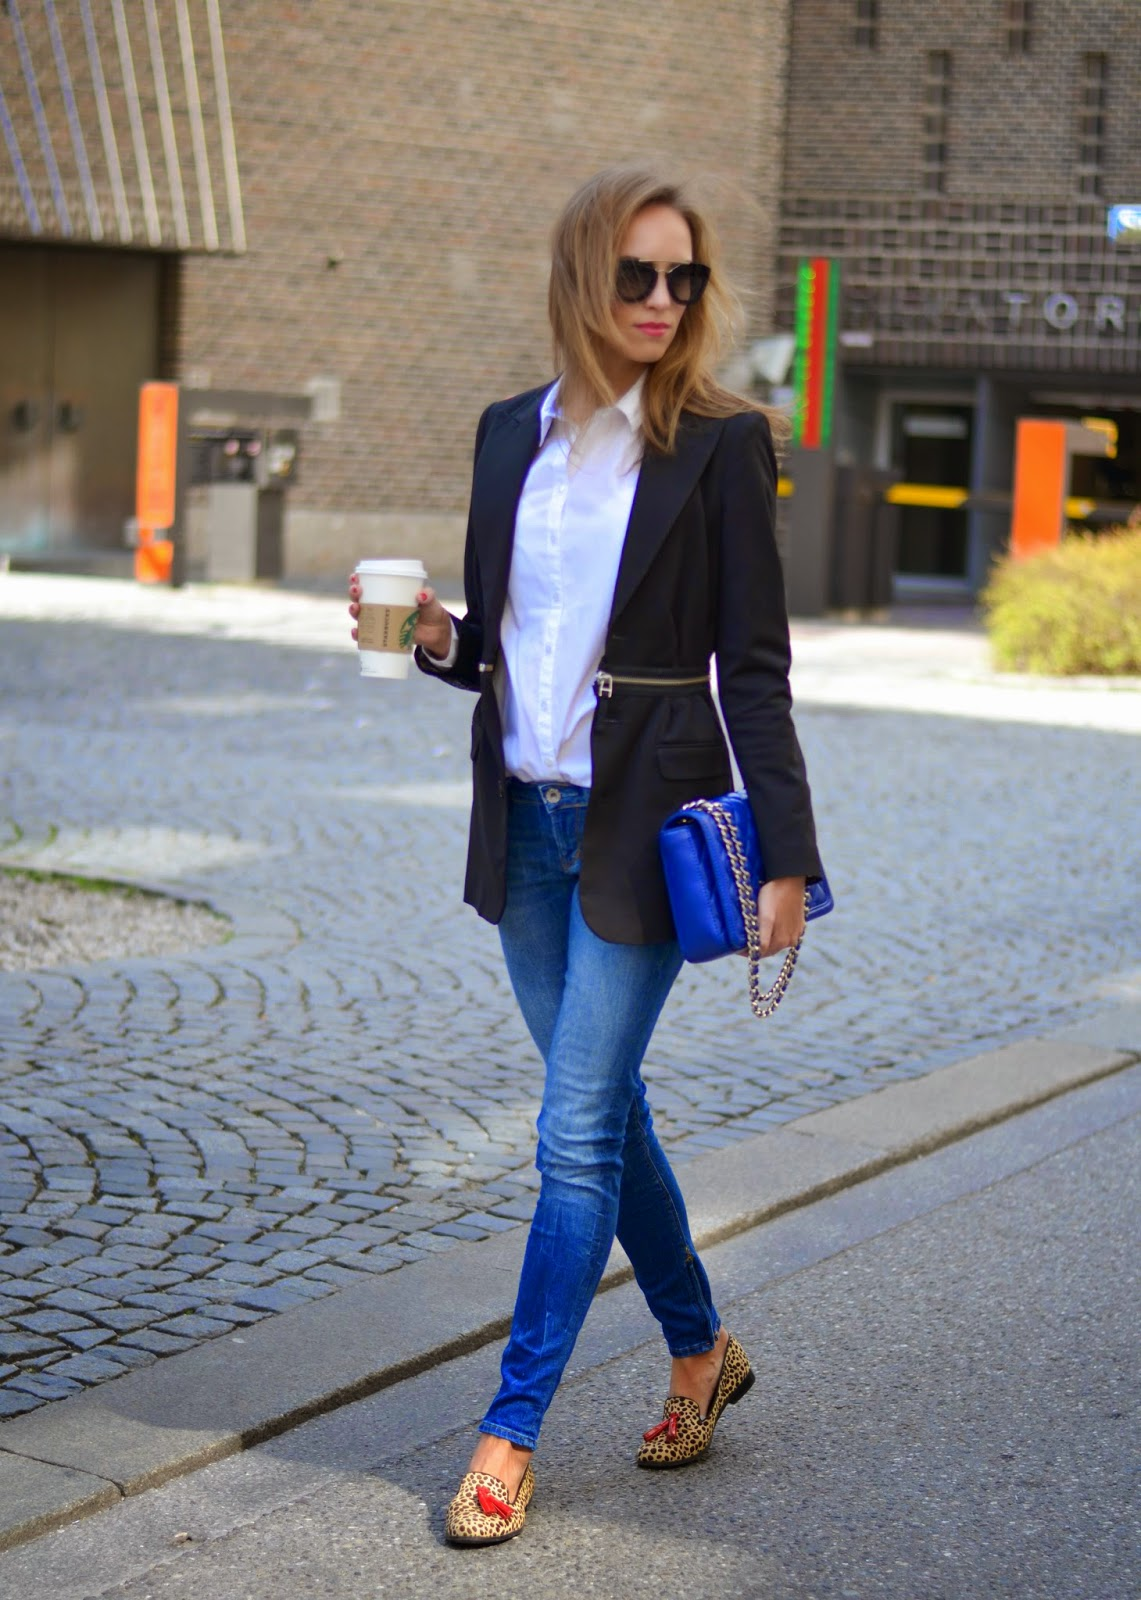 kristjaana mere blazer blue jeans casual chic outfit